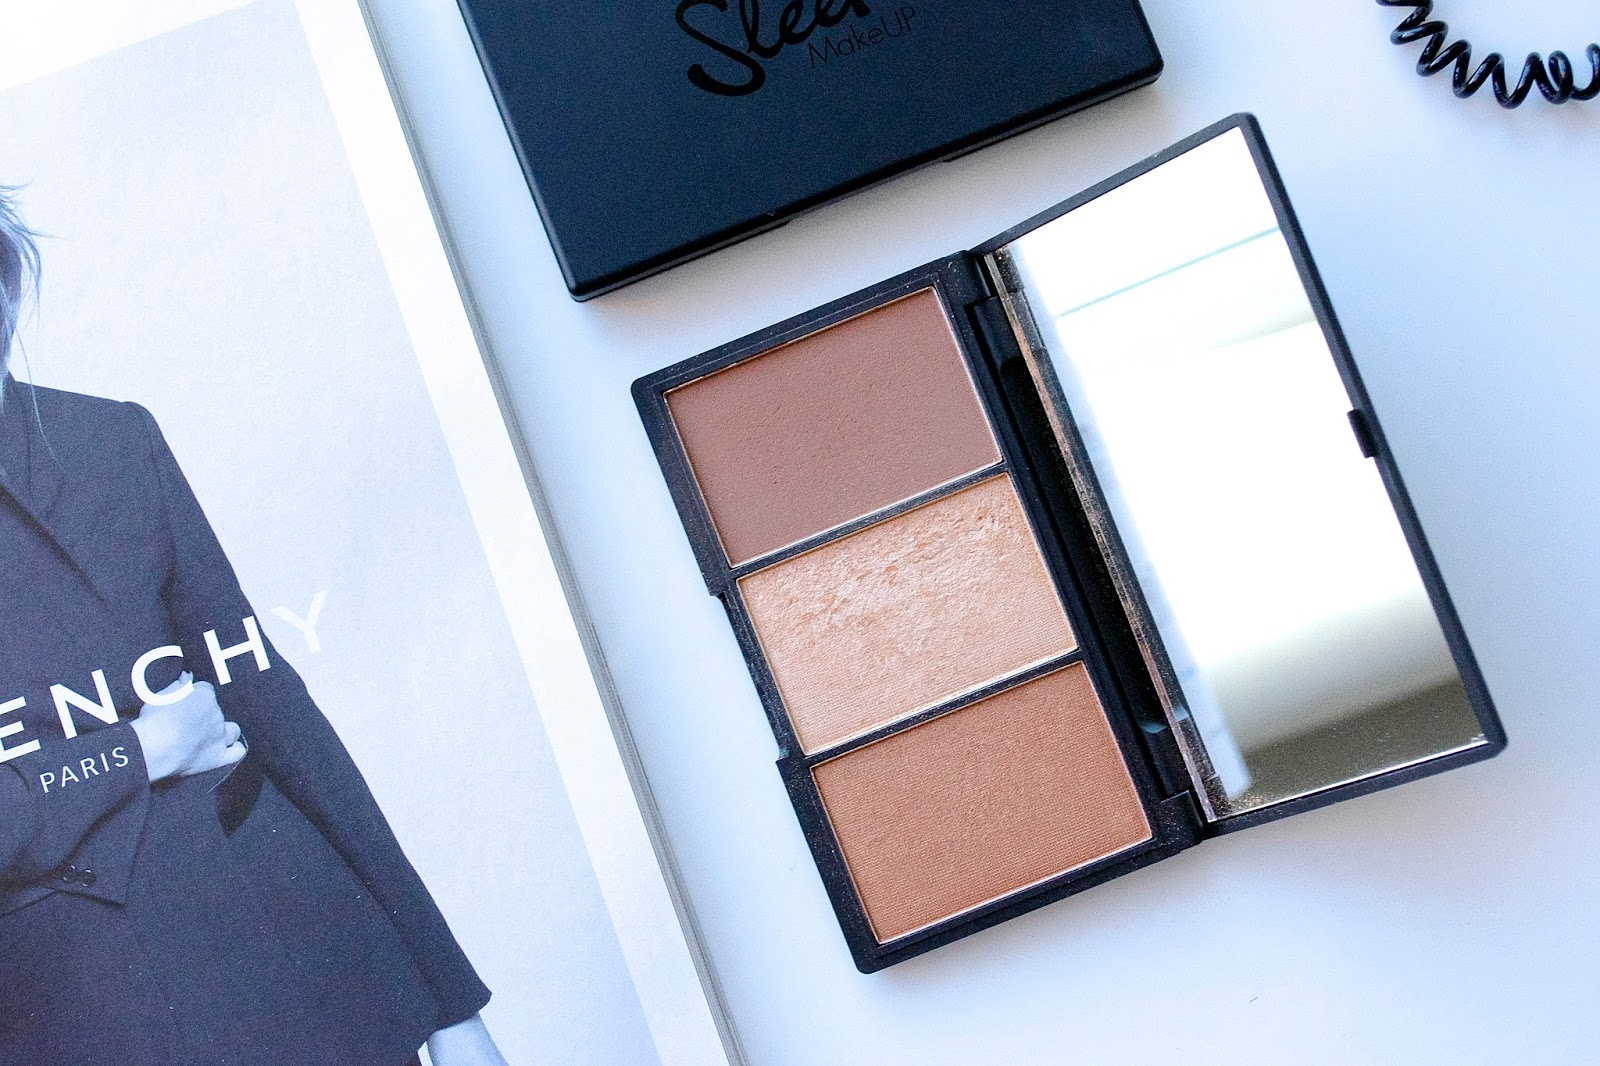 Makeup, Sleek Blush By 3 Lace Palette, Sleek Contour & Highlight Palette, Sleek Makeup, Sleek Blush